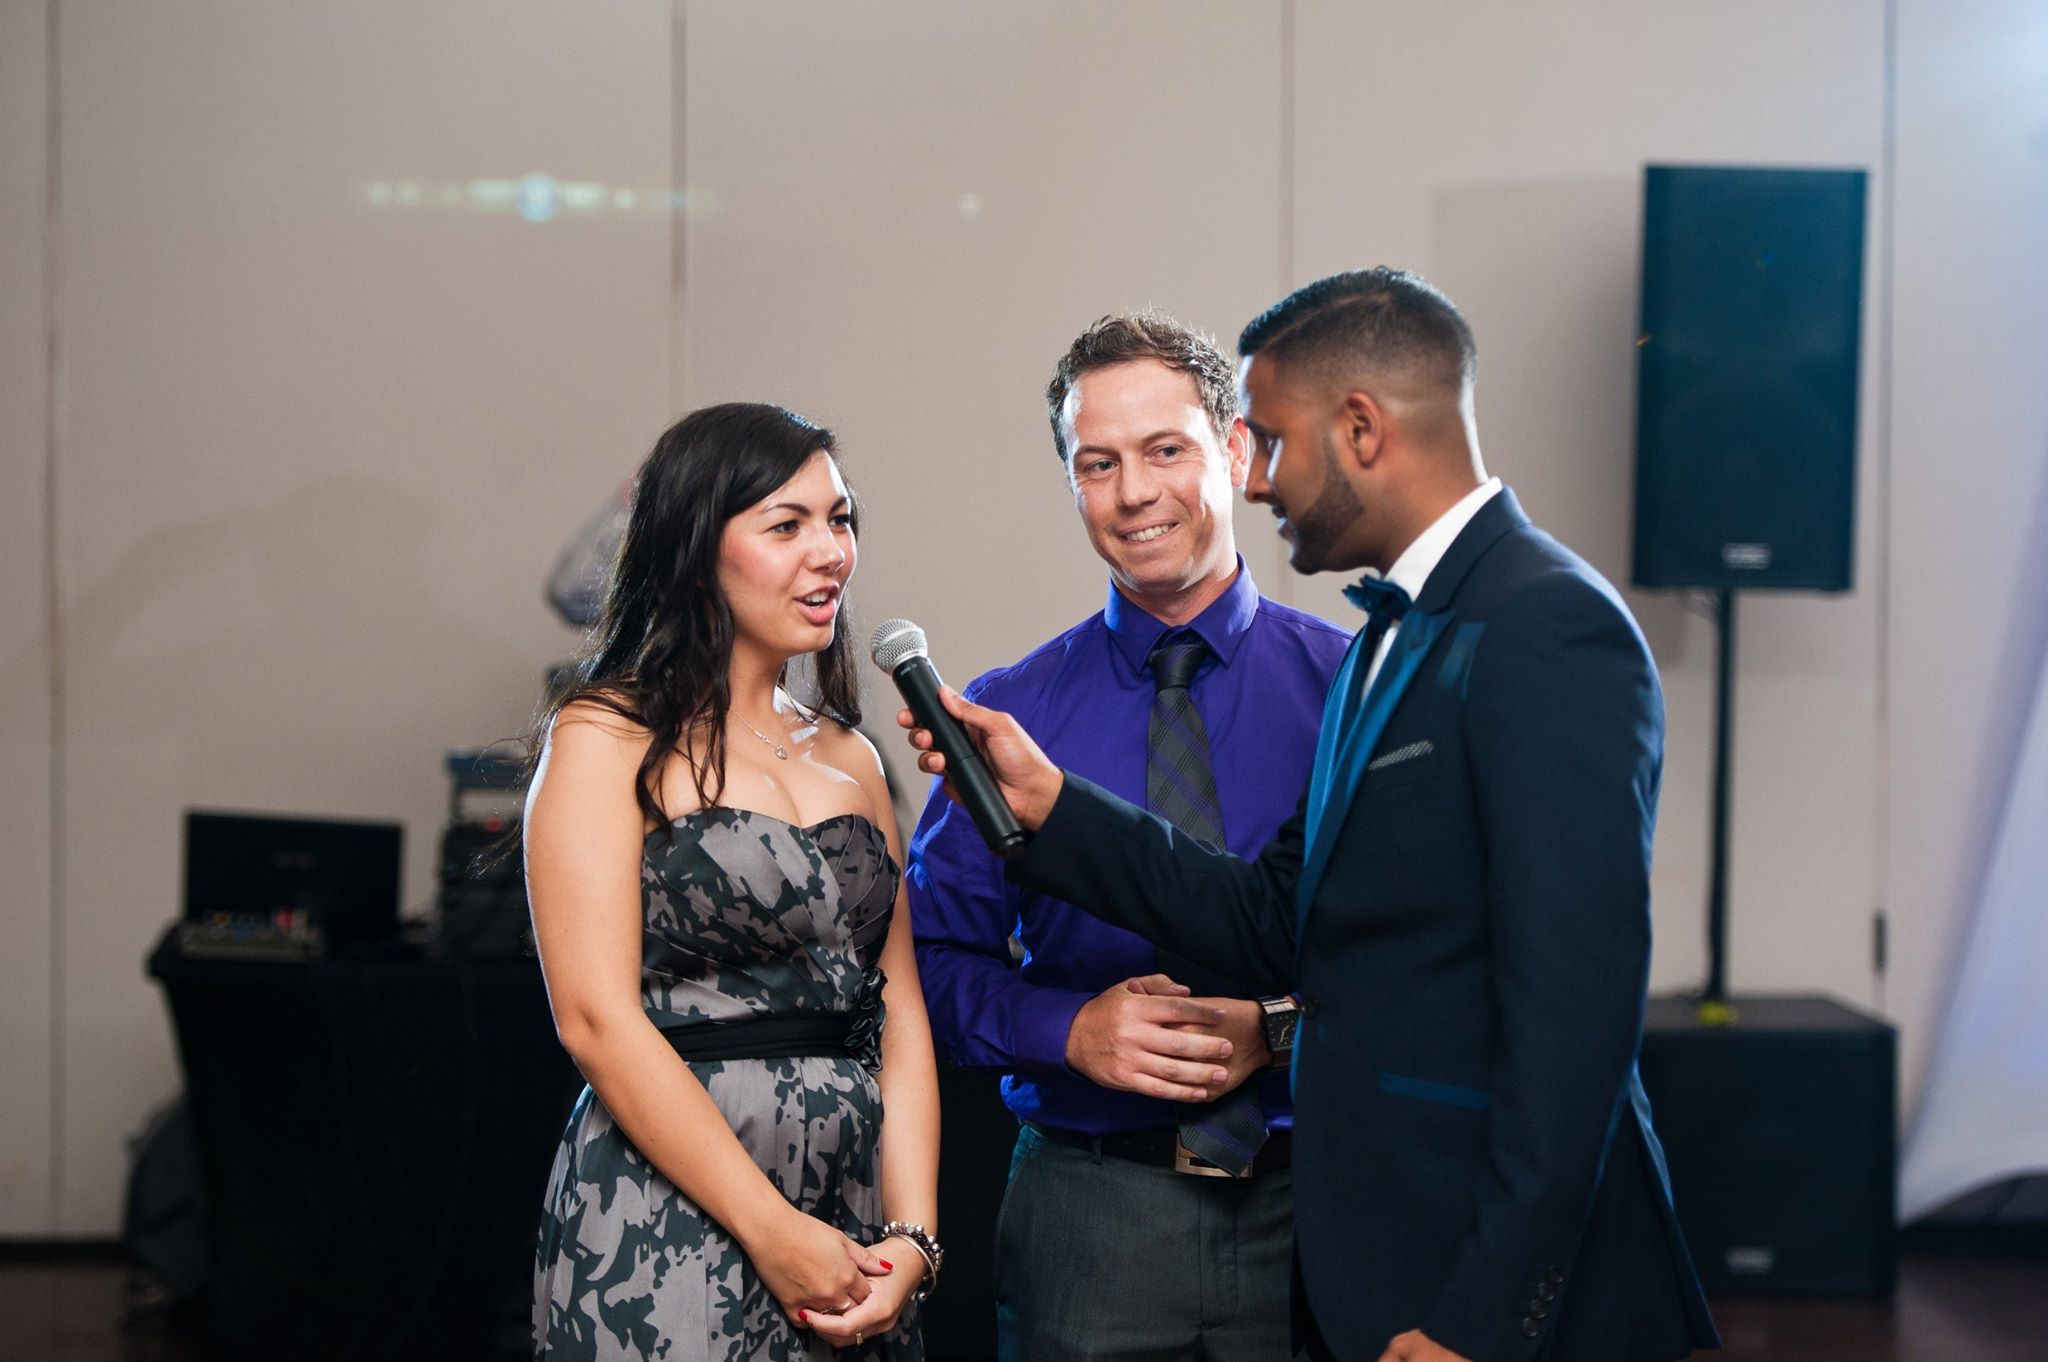 Interviewing-at-a-Wedding.jpg